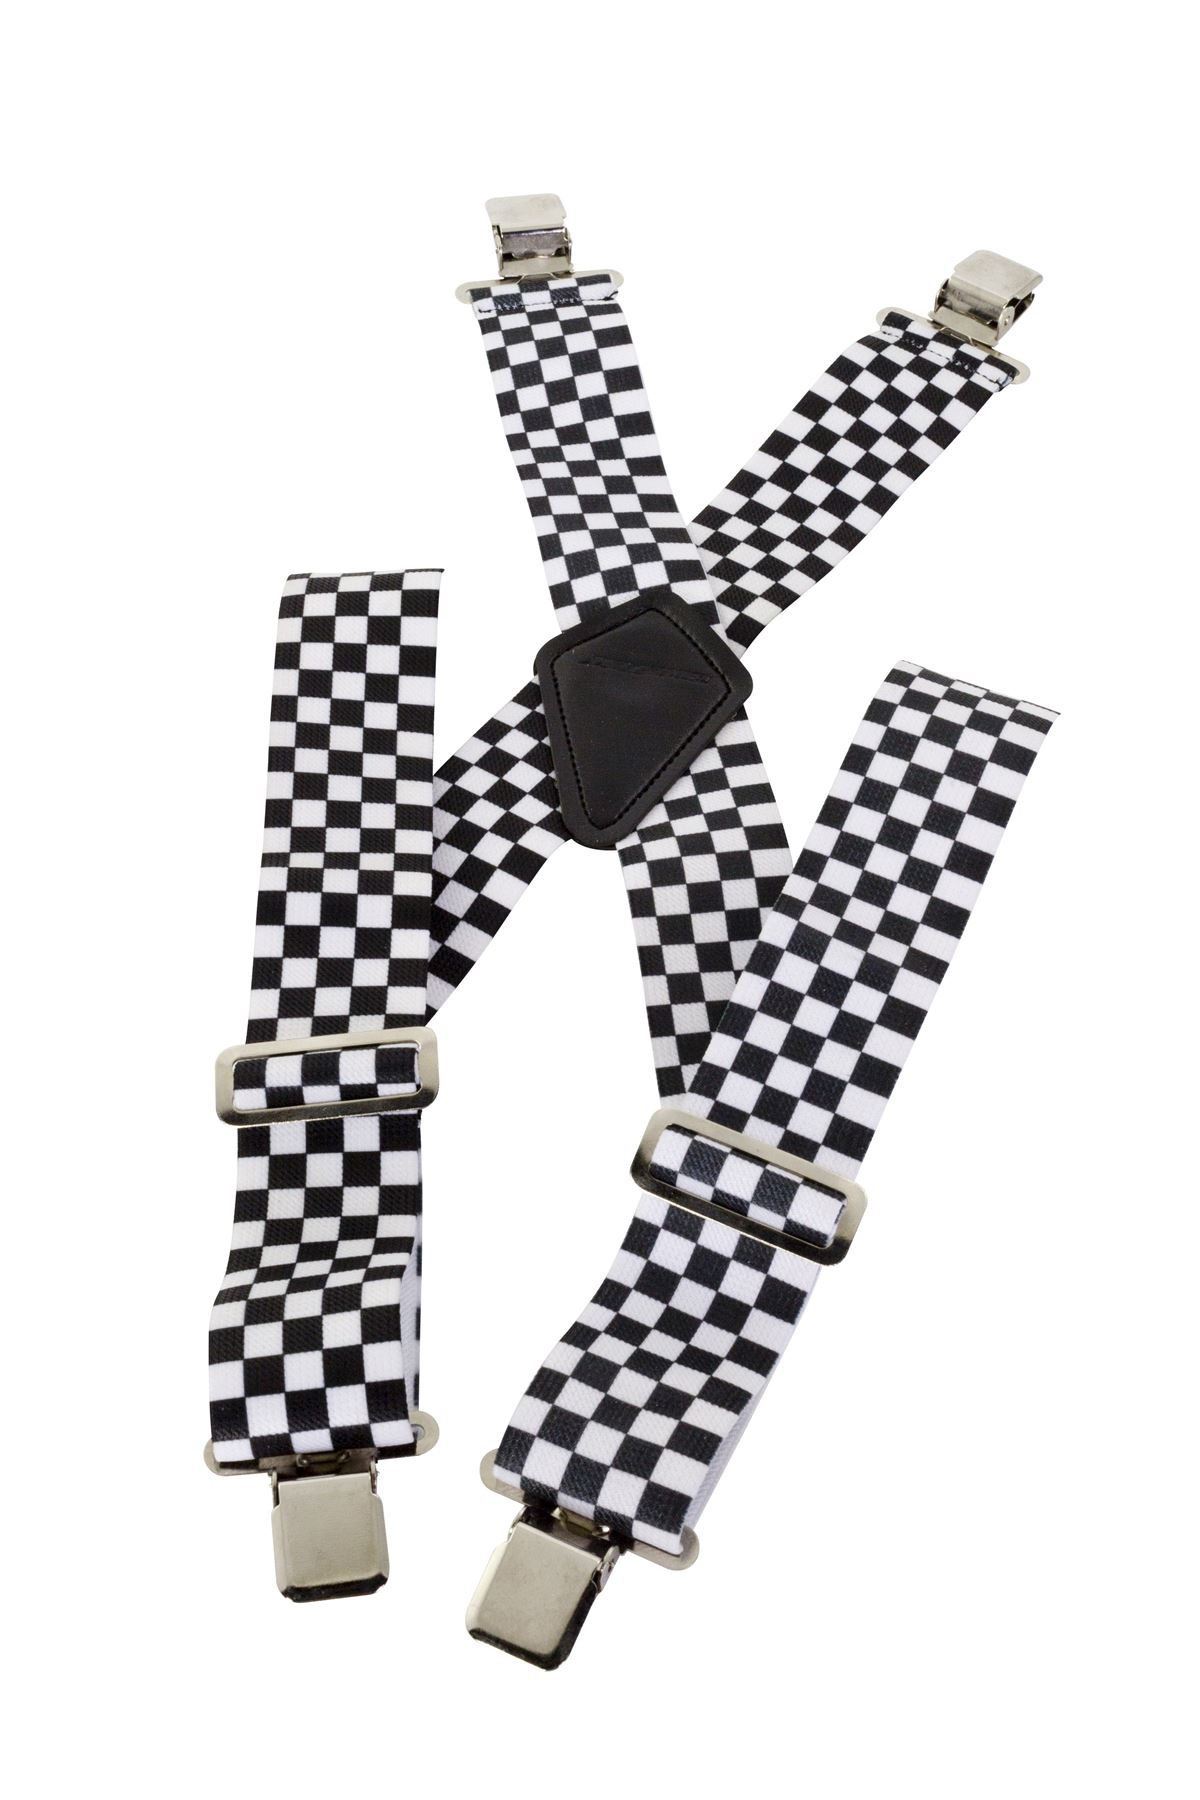 Bikeit Elastic Checkered Motorcycle Braces For Leather /& Textile Trousers